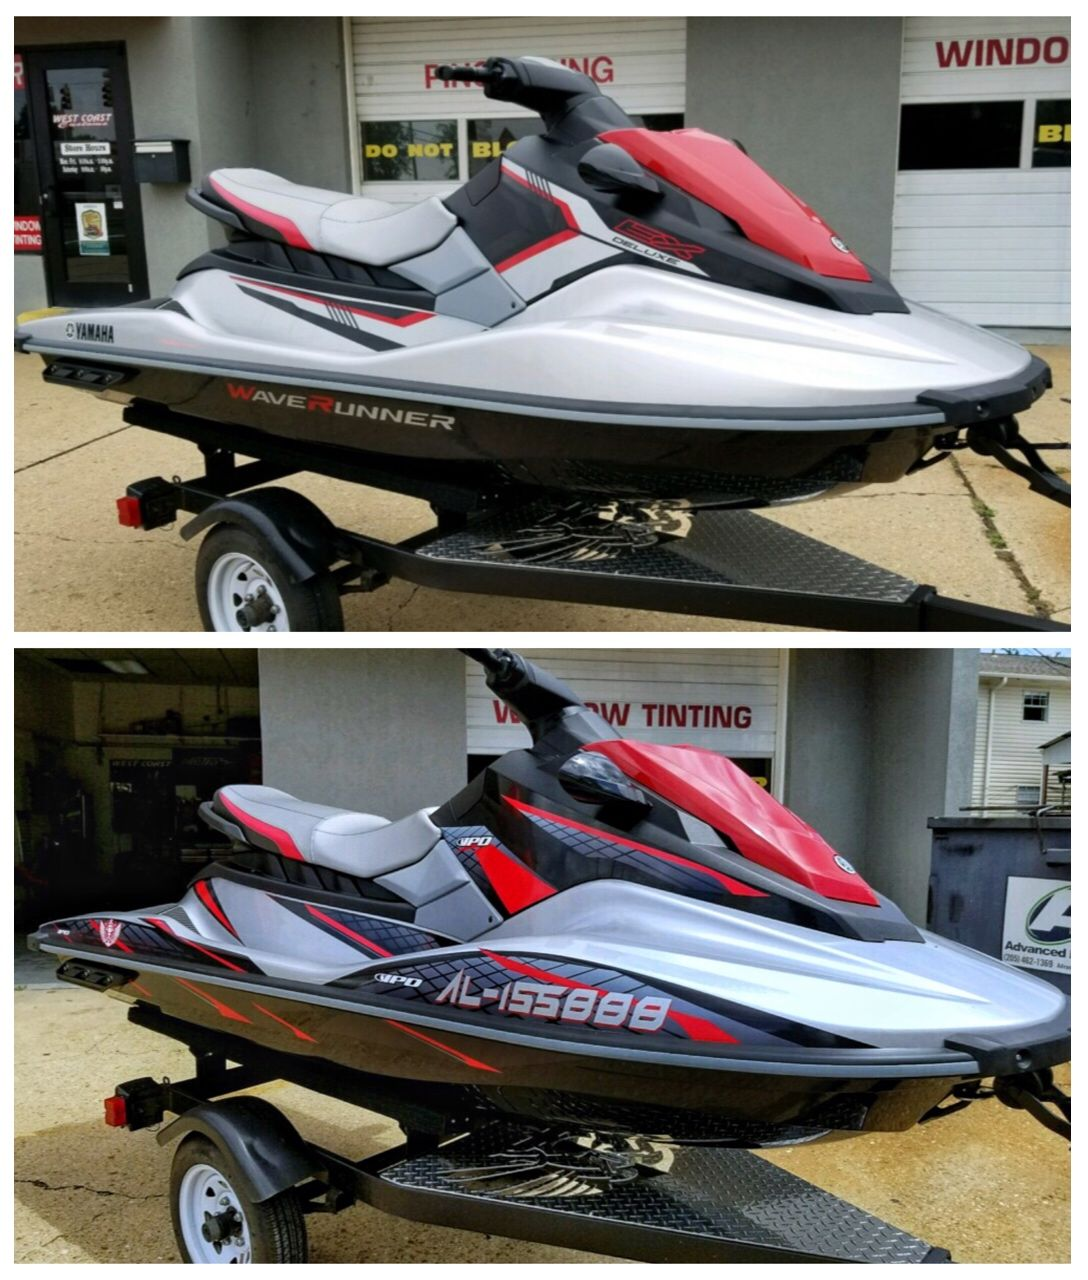 2017 Yamaha Ex Deluxe With Idp Graphics Kit Before And After Jet Ski Baby Strollers Skiing